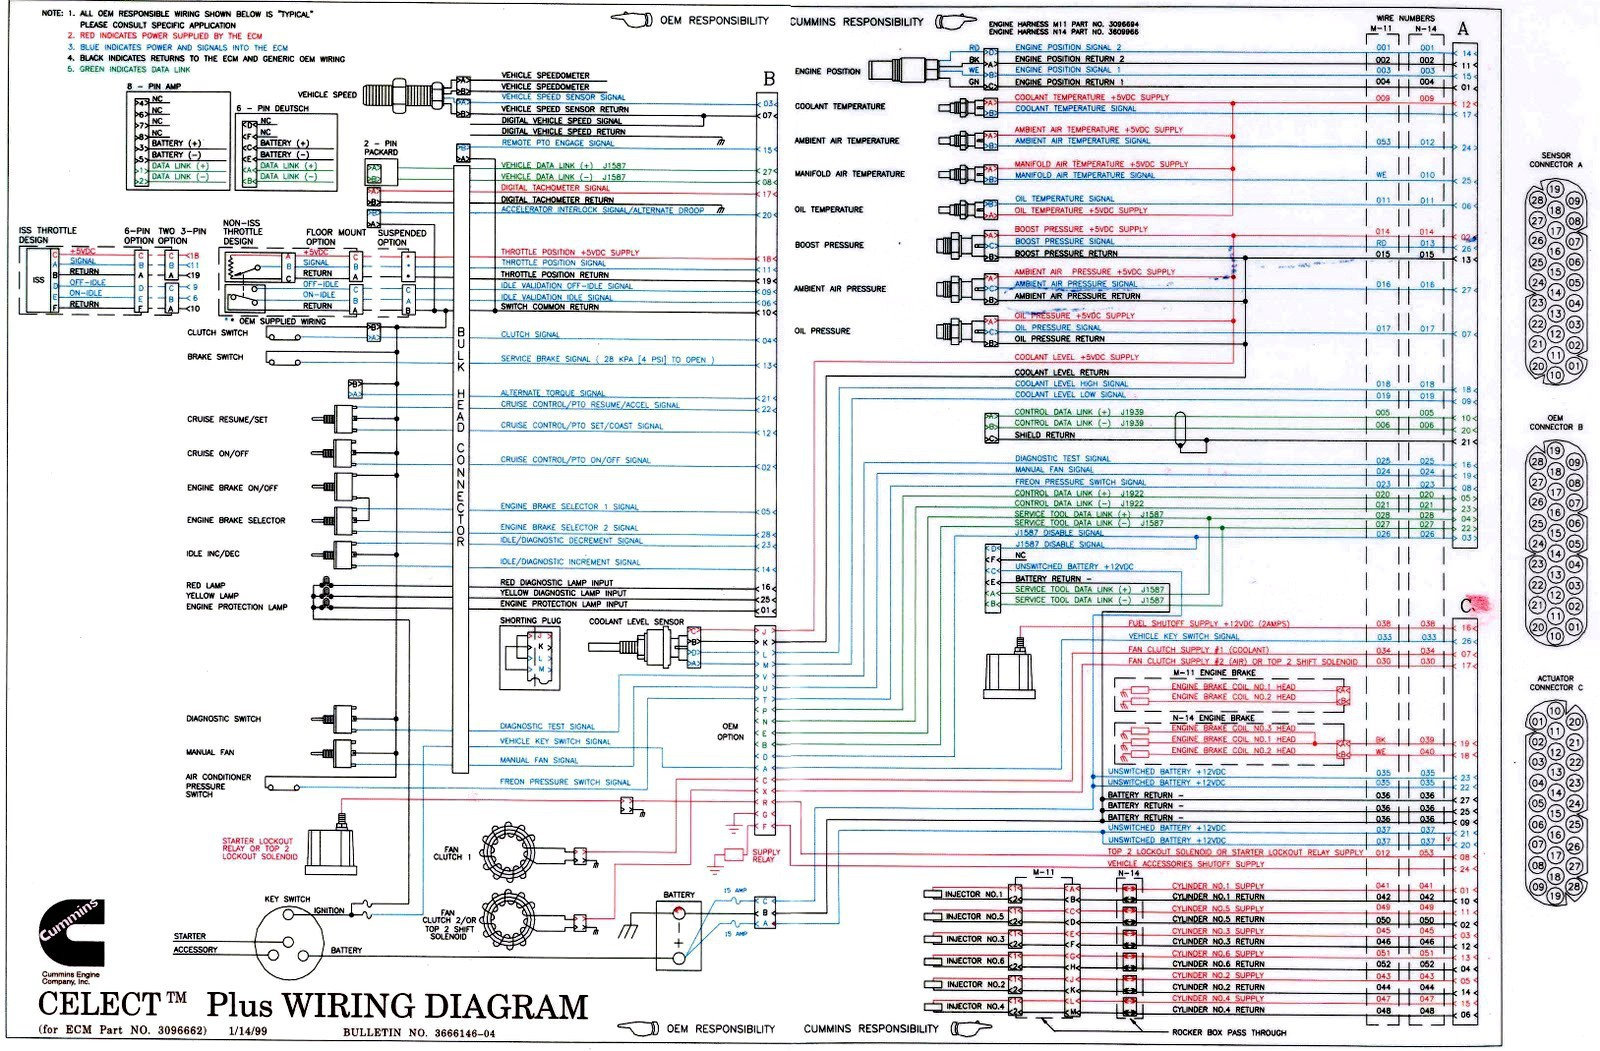 M 11 Ecm Wiring Diagram Free For You Equinox Harness M11 Cummins Engine Library Rh 73 Codingcommunity De Motor